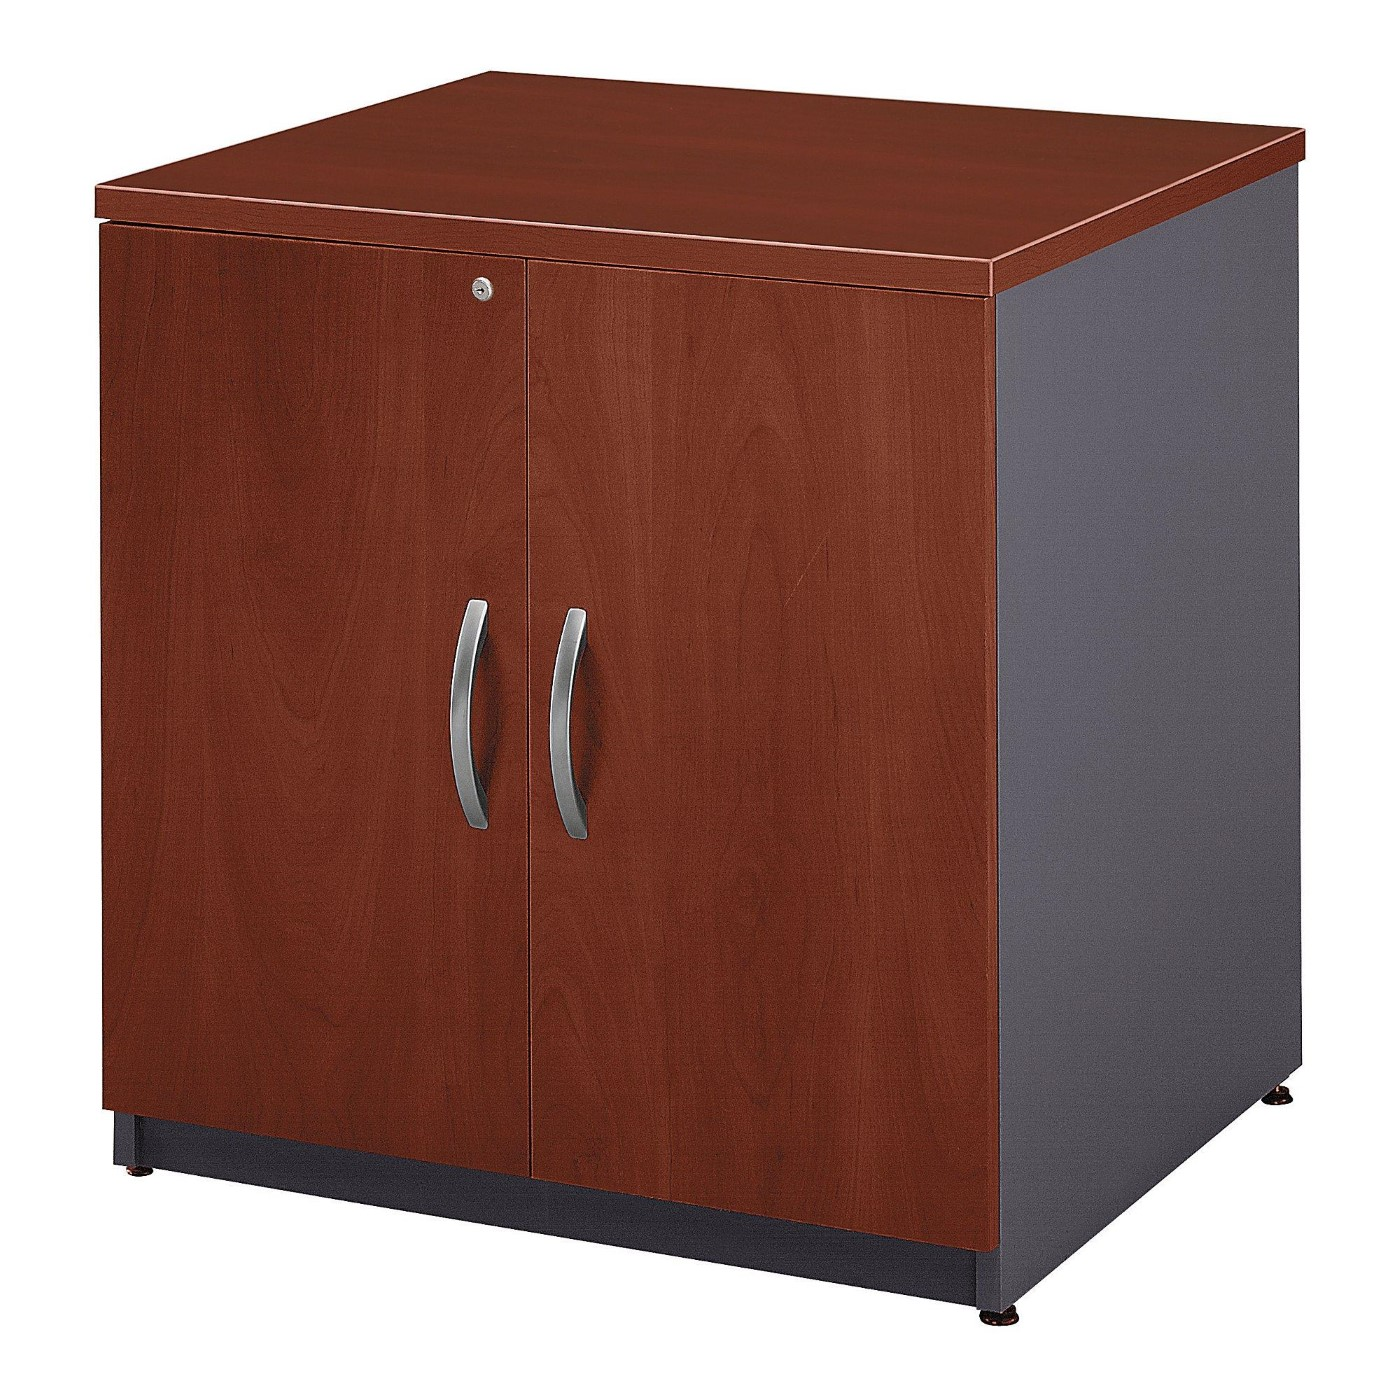 BUSH BUSINESS FURNITURE SERIES C 30W STORAGE CABINET. FREE SHIPPING</font></b></font>&#x1F384<font color=red><b>ERGONOMICHOME HOLIDAY SALE - ENDS DEC. 17, 2019</b></font>&#x1F384